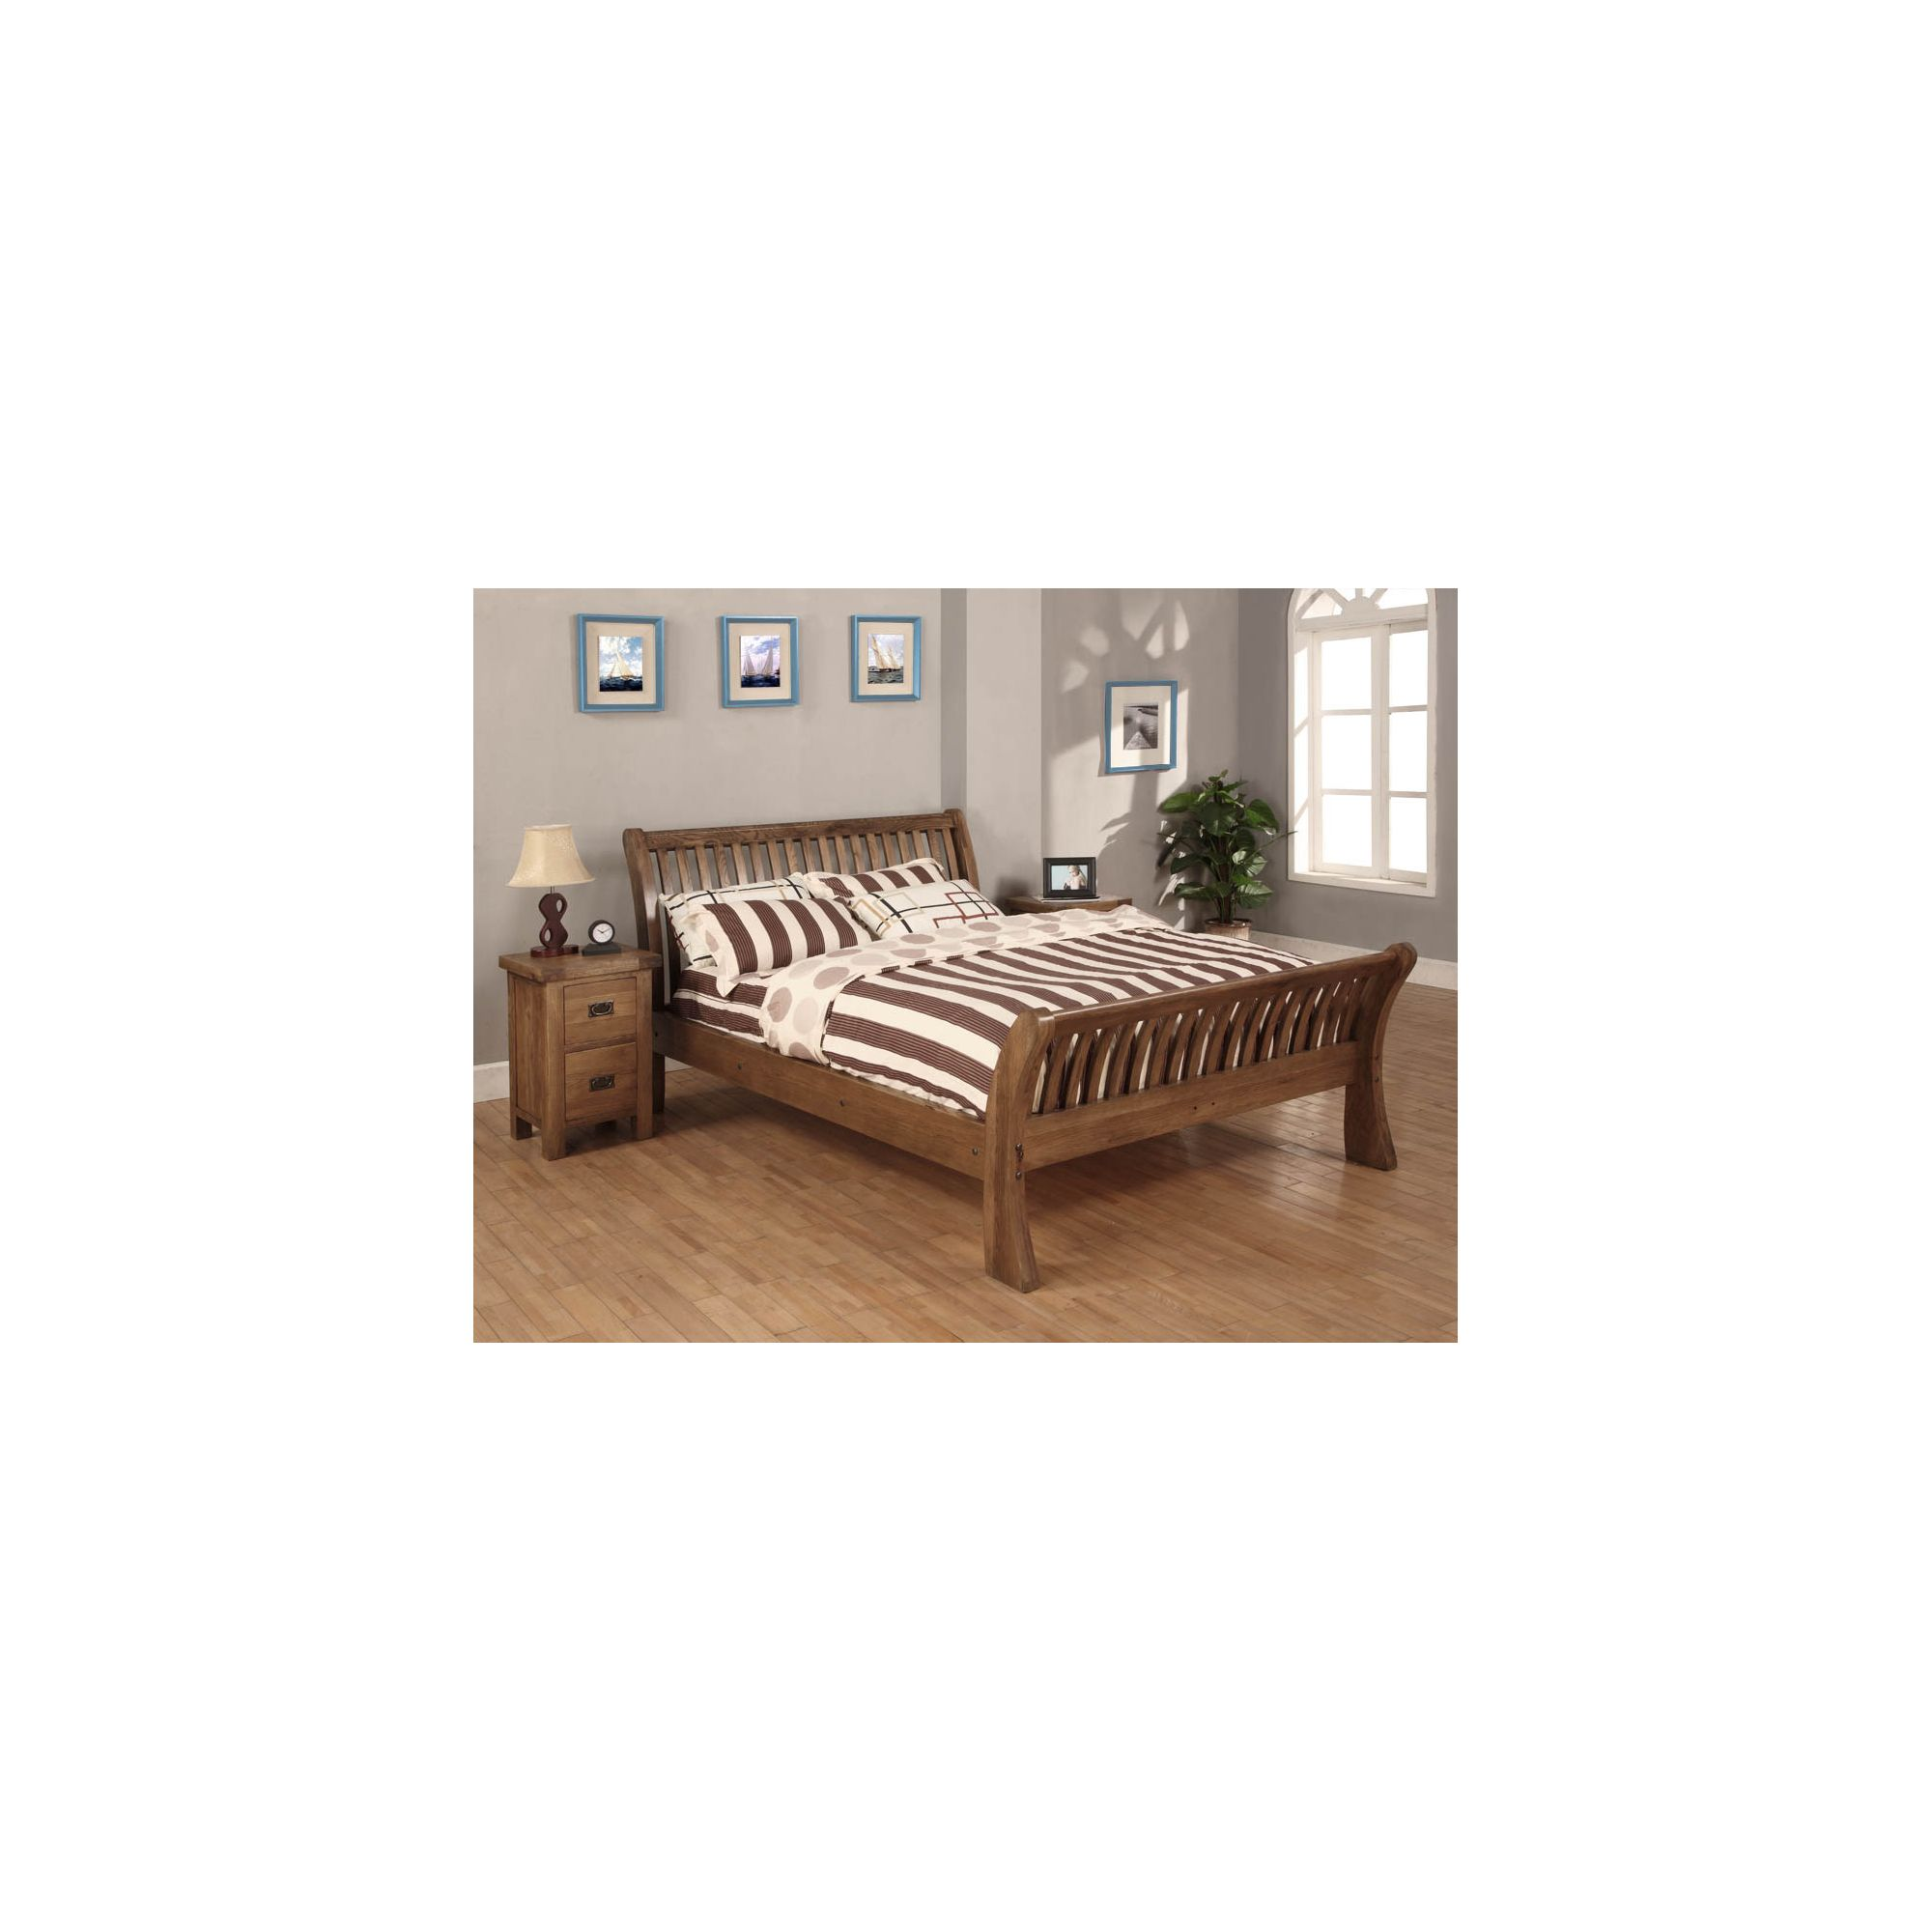 Hawkshead Brooklyn Bed Frame - 4' 6'' Double at Tesco Direct